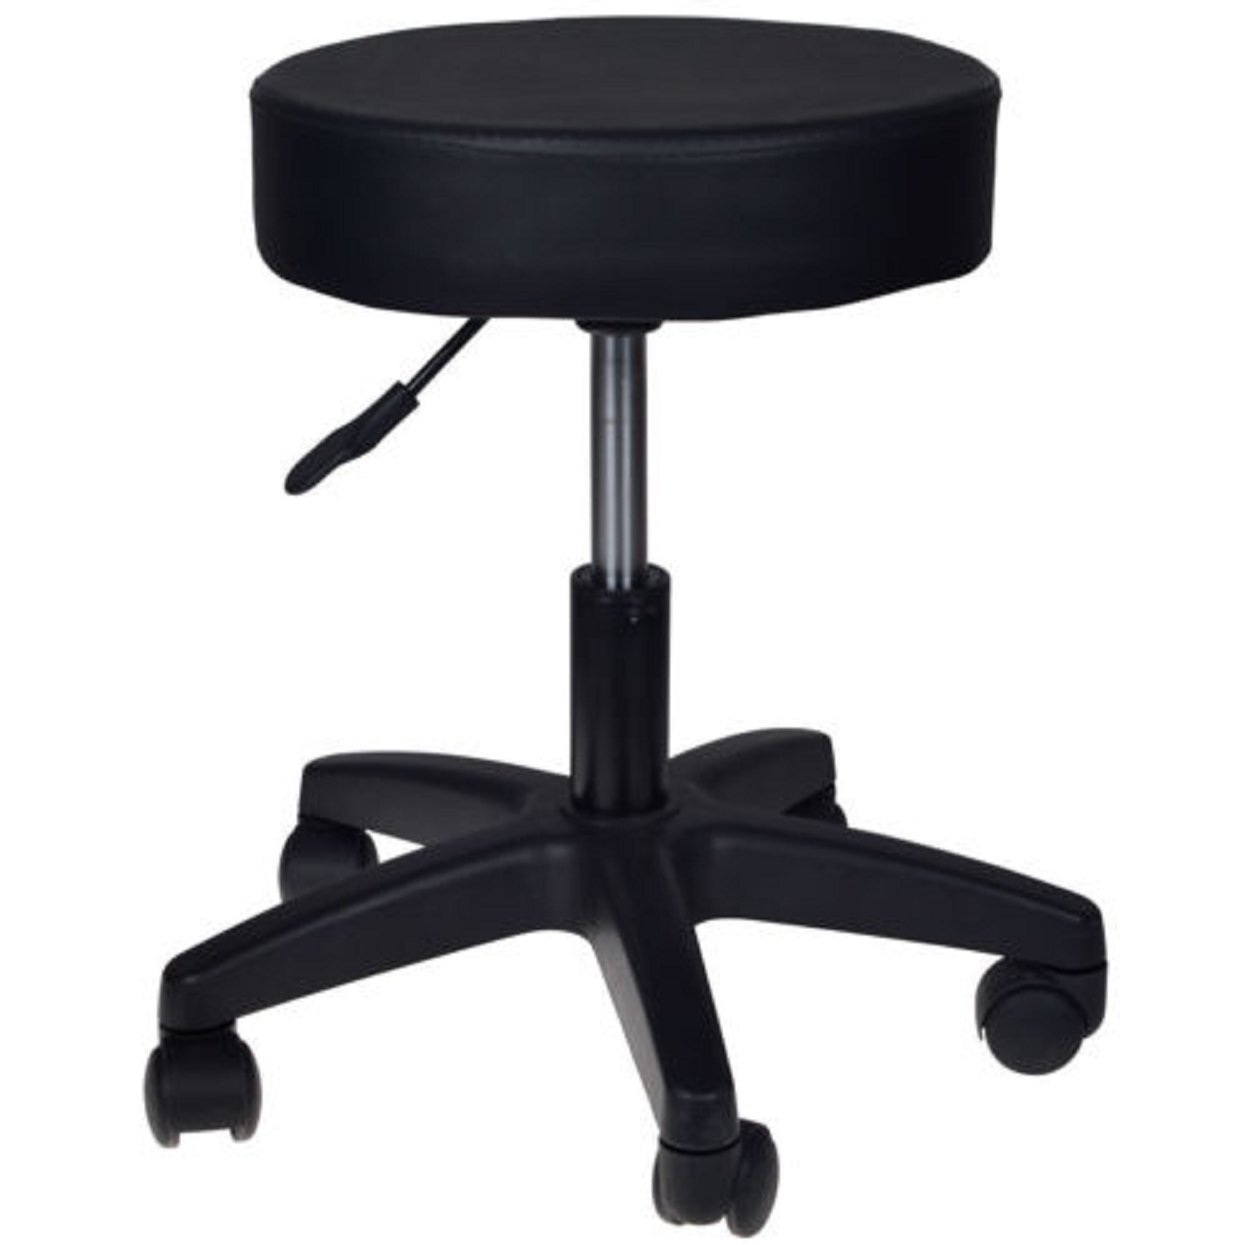 Amazon.com: Black Stool Hydraulic Step Adjustable Kitchen Vanity ...